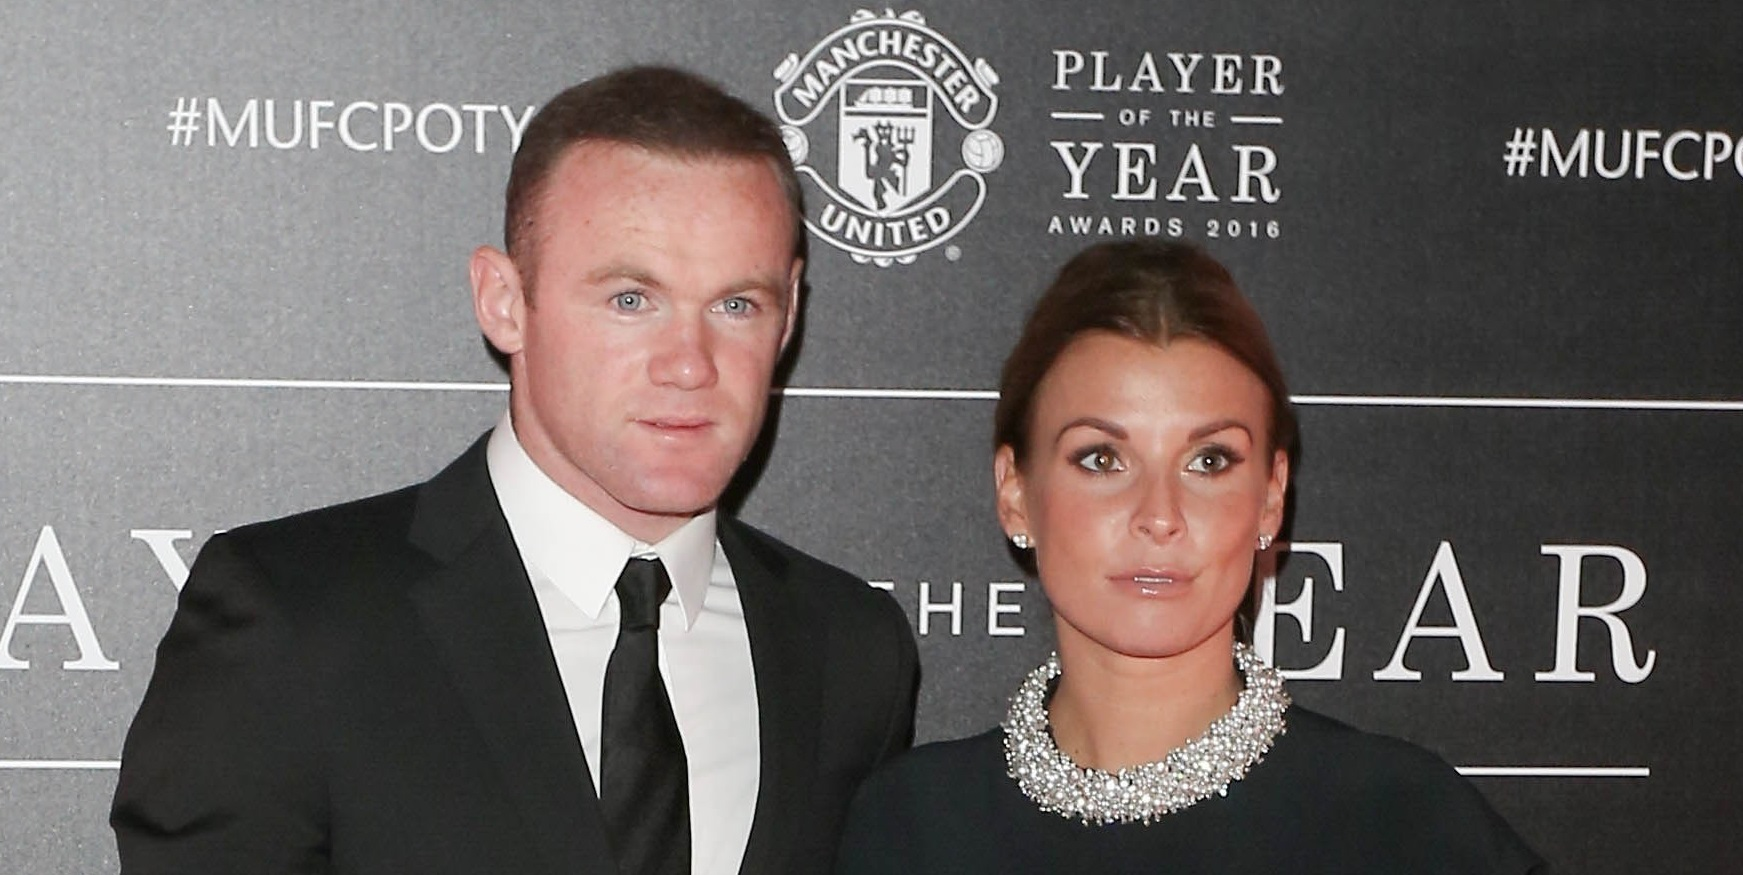 Coleen and Wayne Rooney's family album